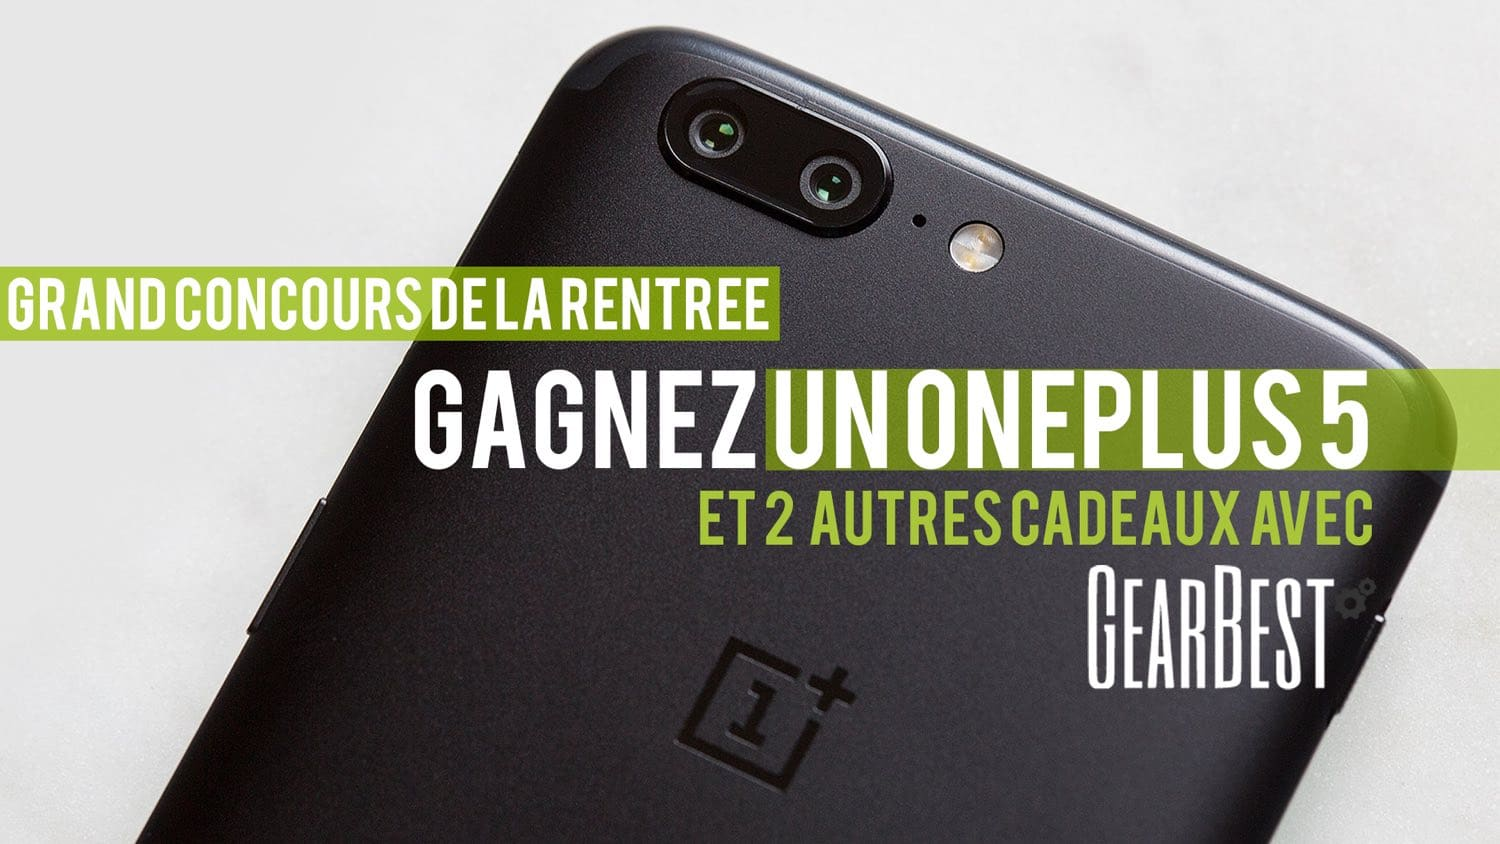 concours gearbest oneplus 5